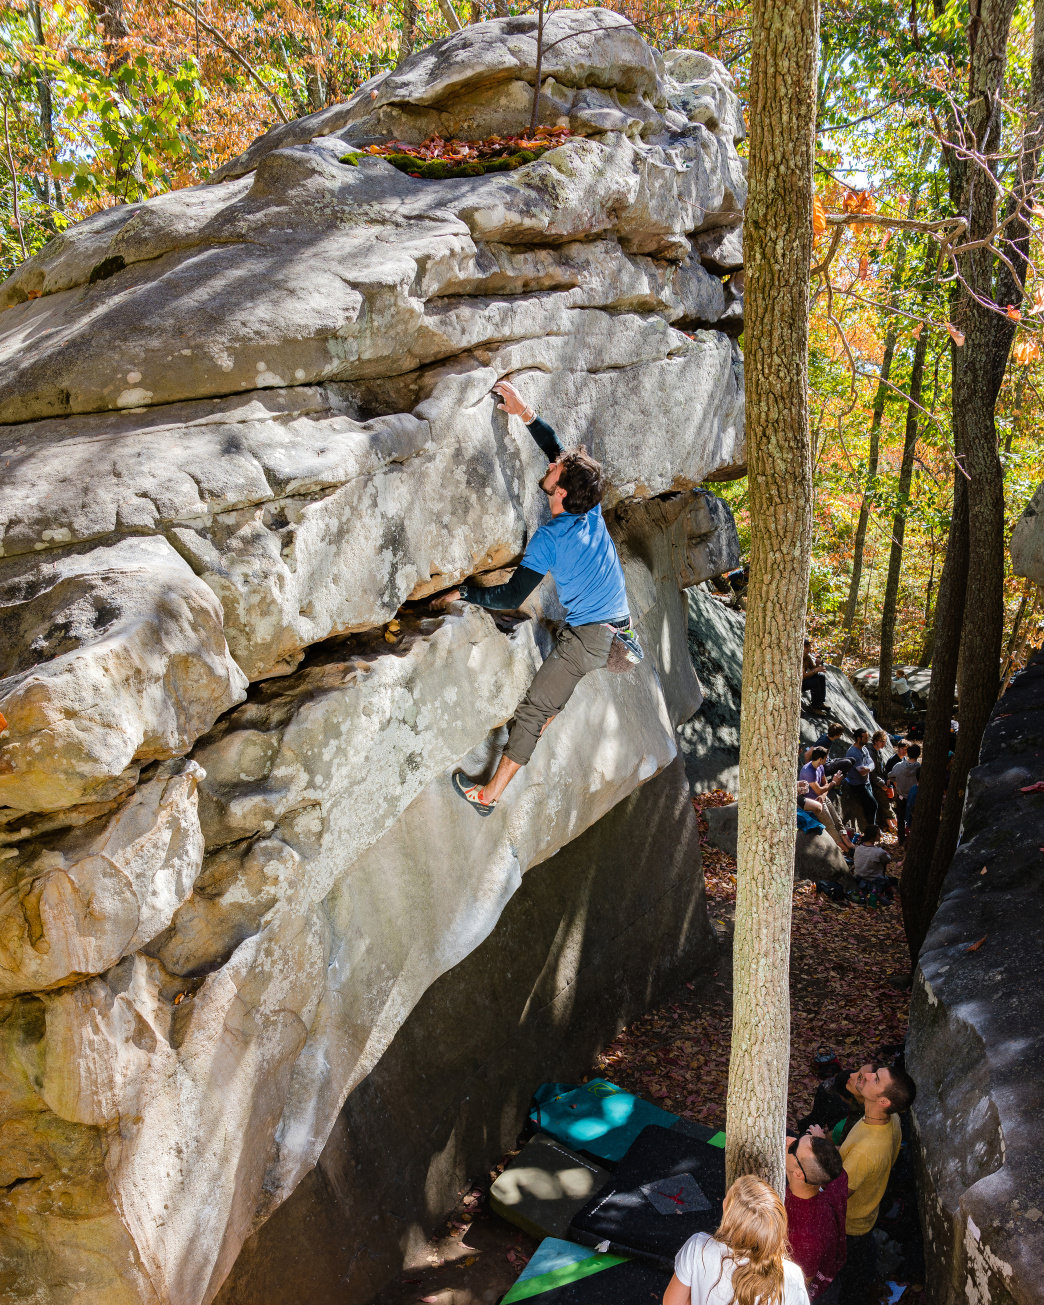 The Triple Crown Series brings several rock climbing competitions to Chattanooga.